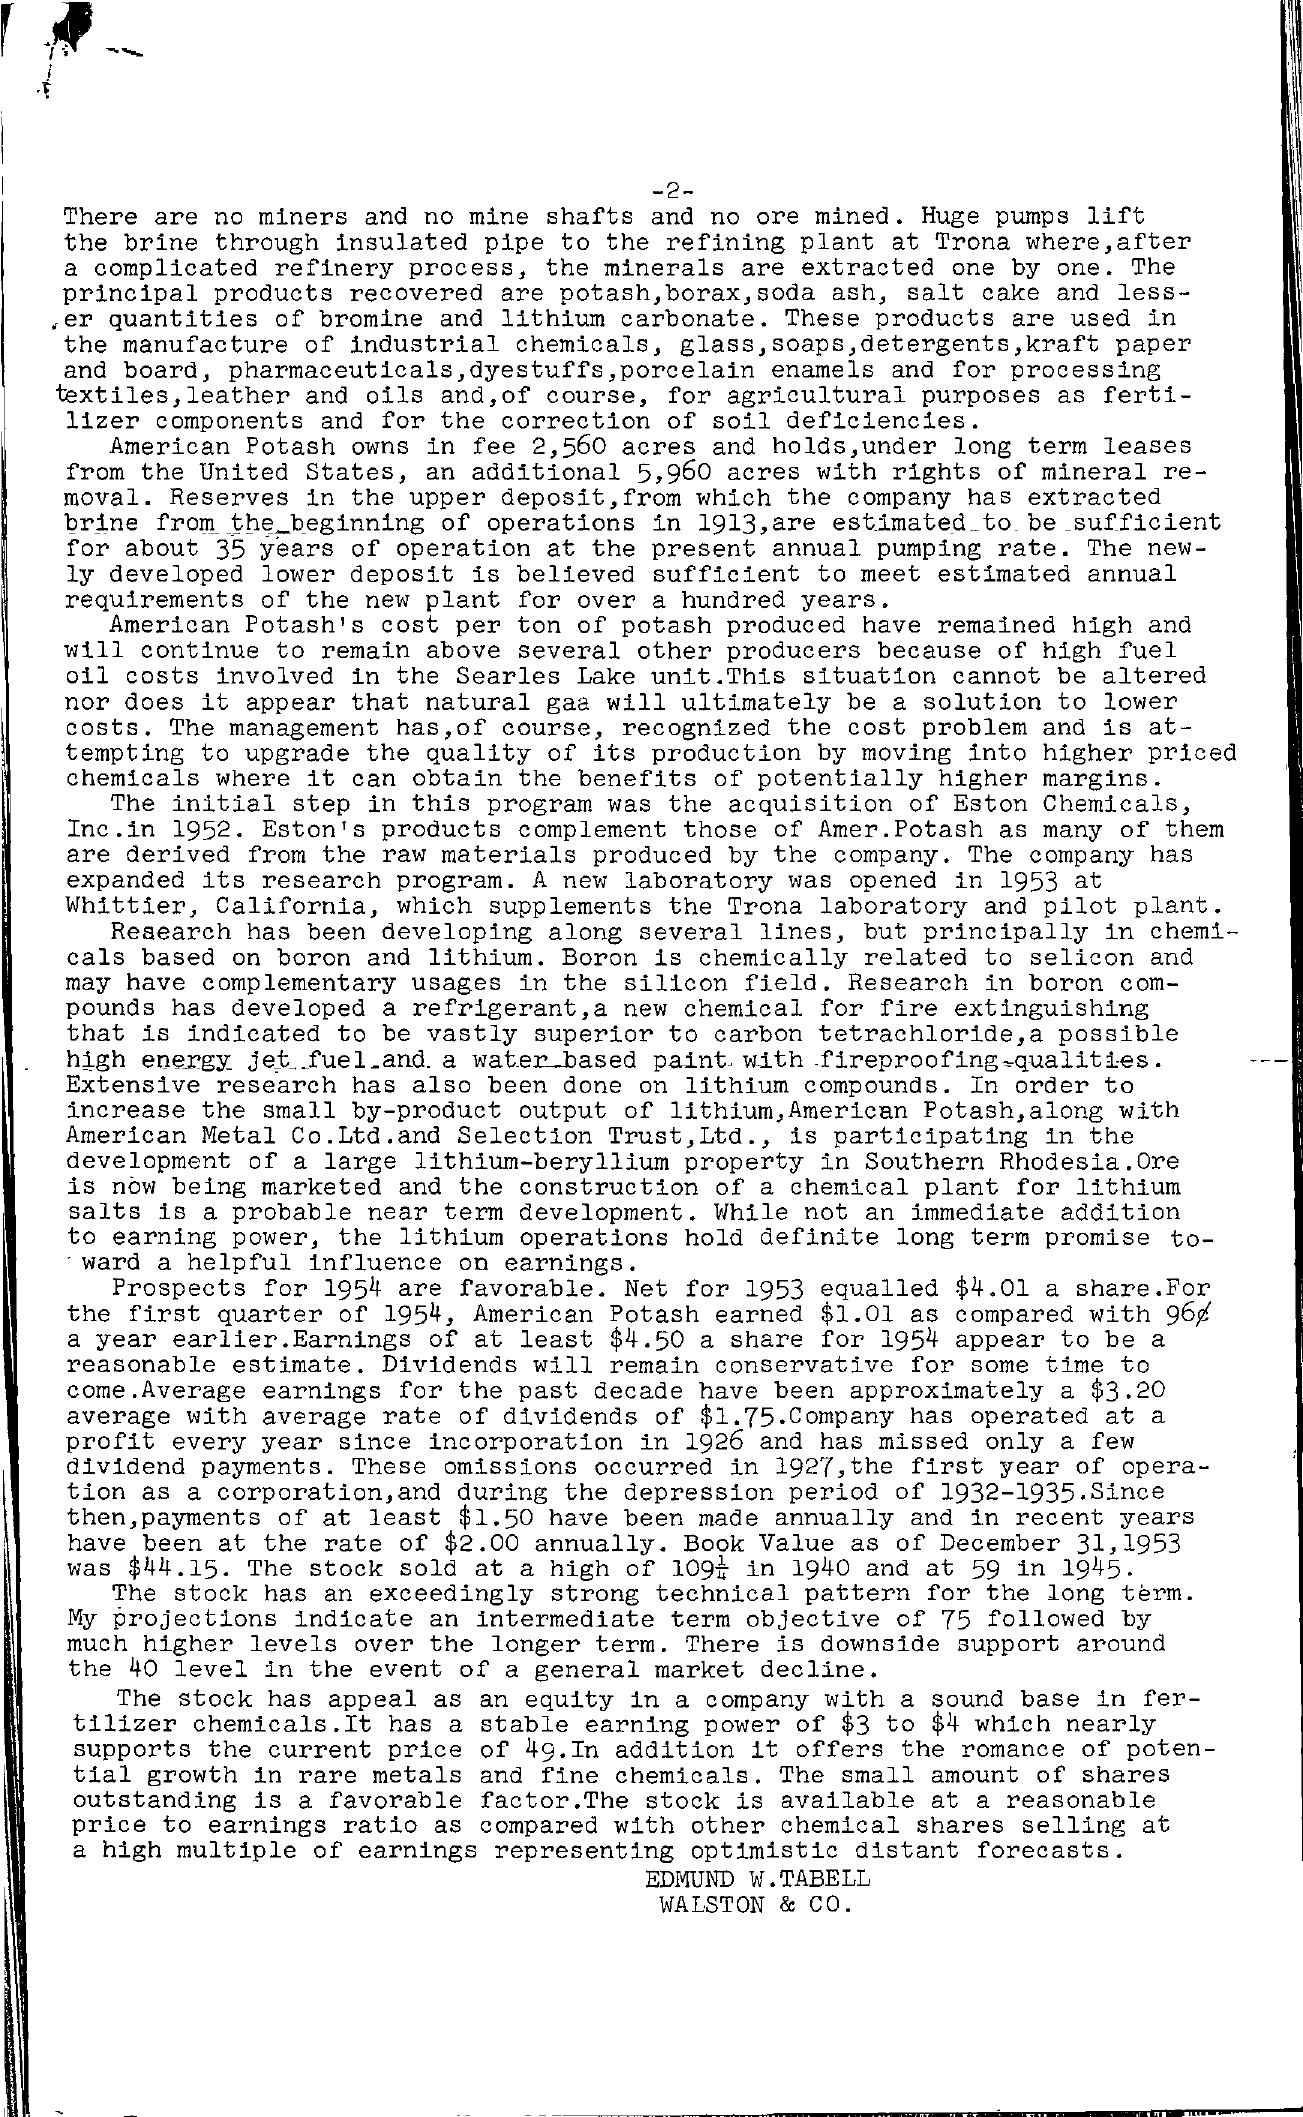 Tabell's Market Letter - June 25, 1954 page 2